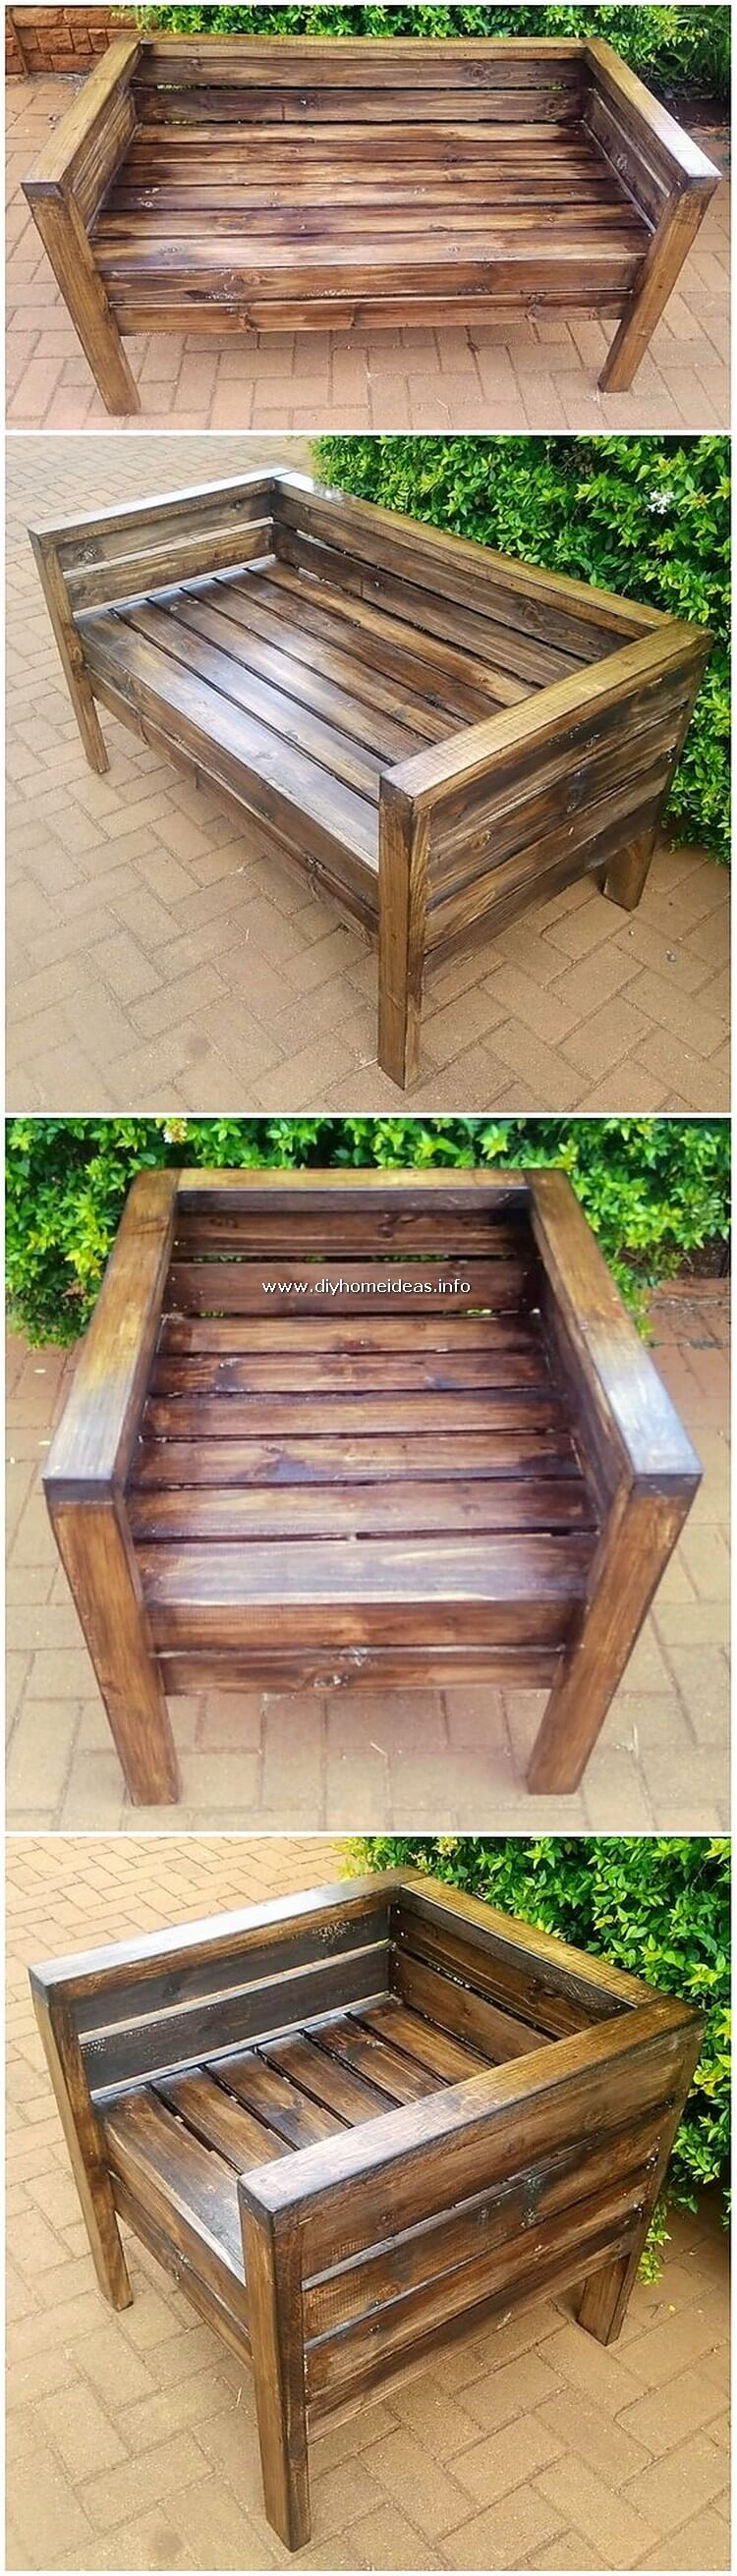 Pallet Bench and Chair